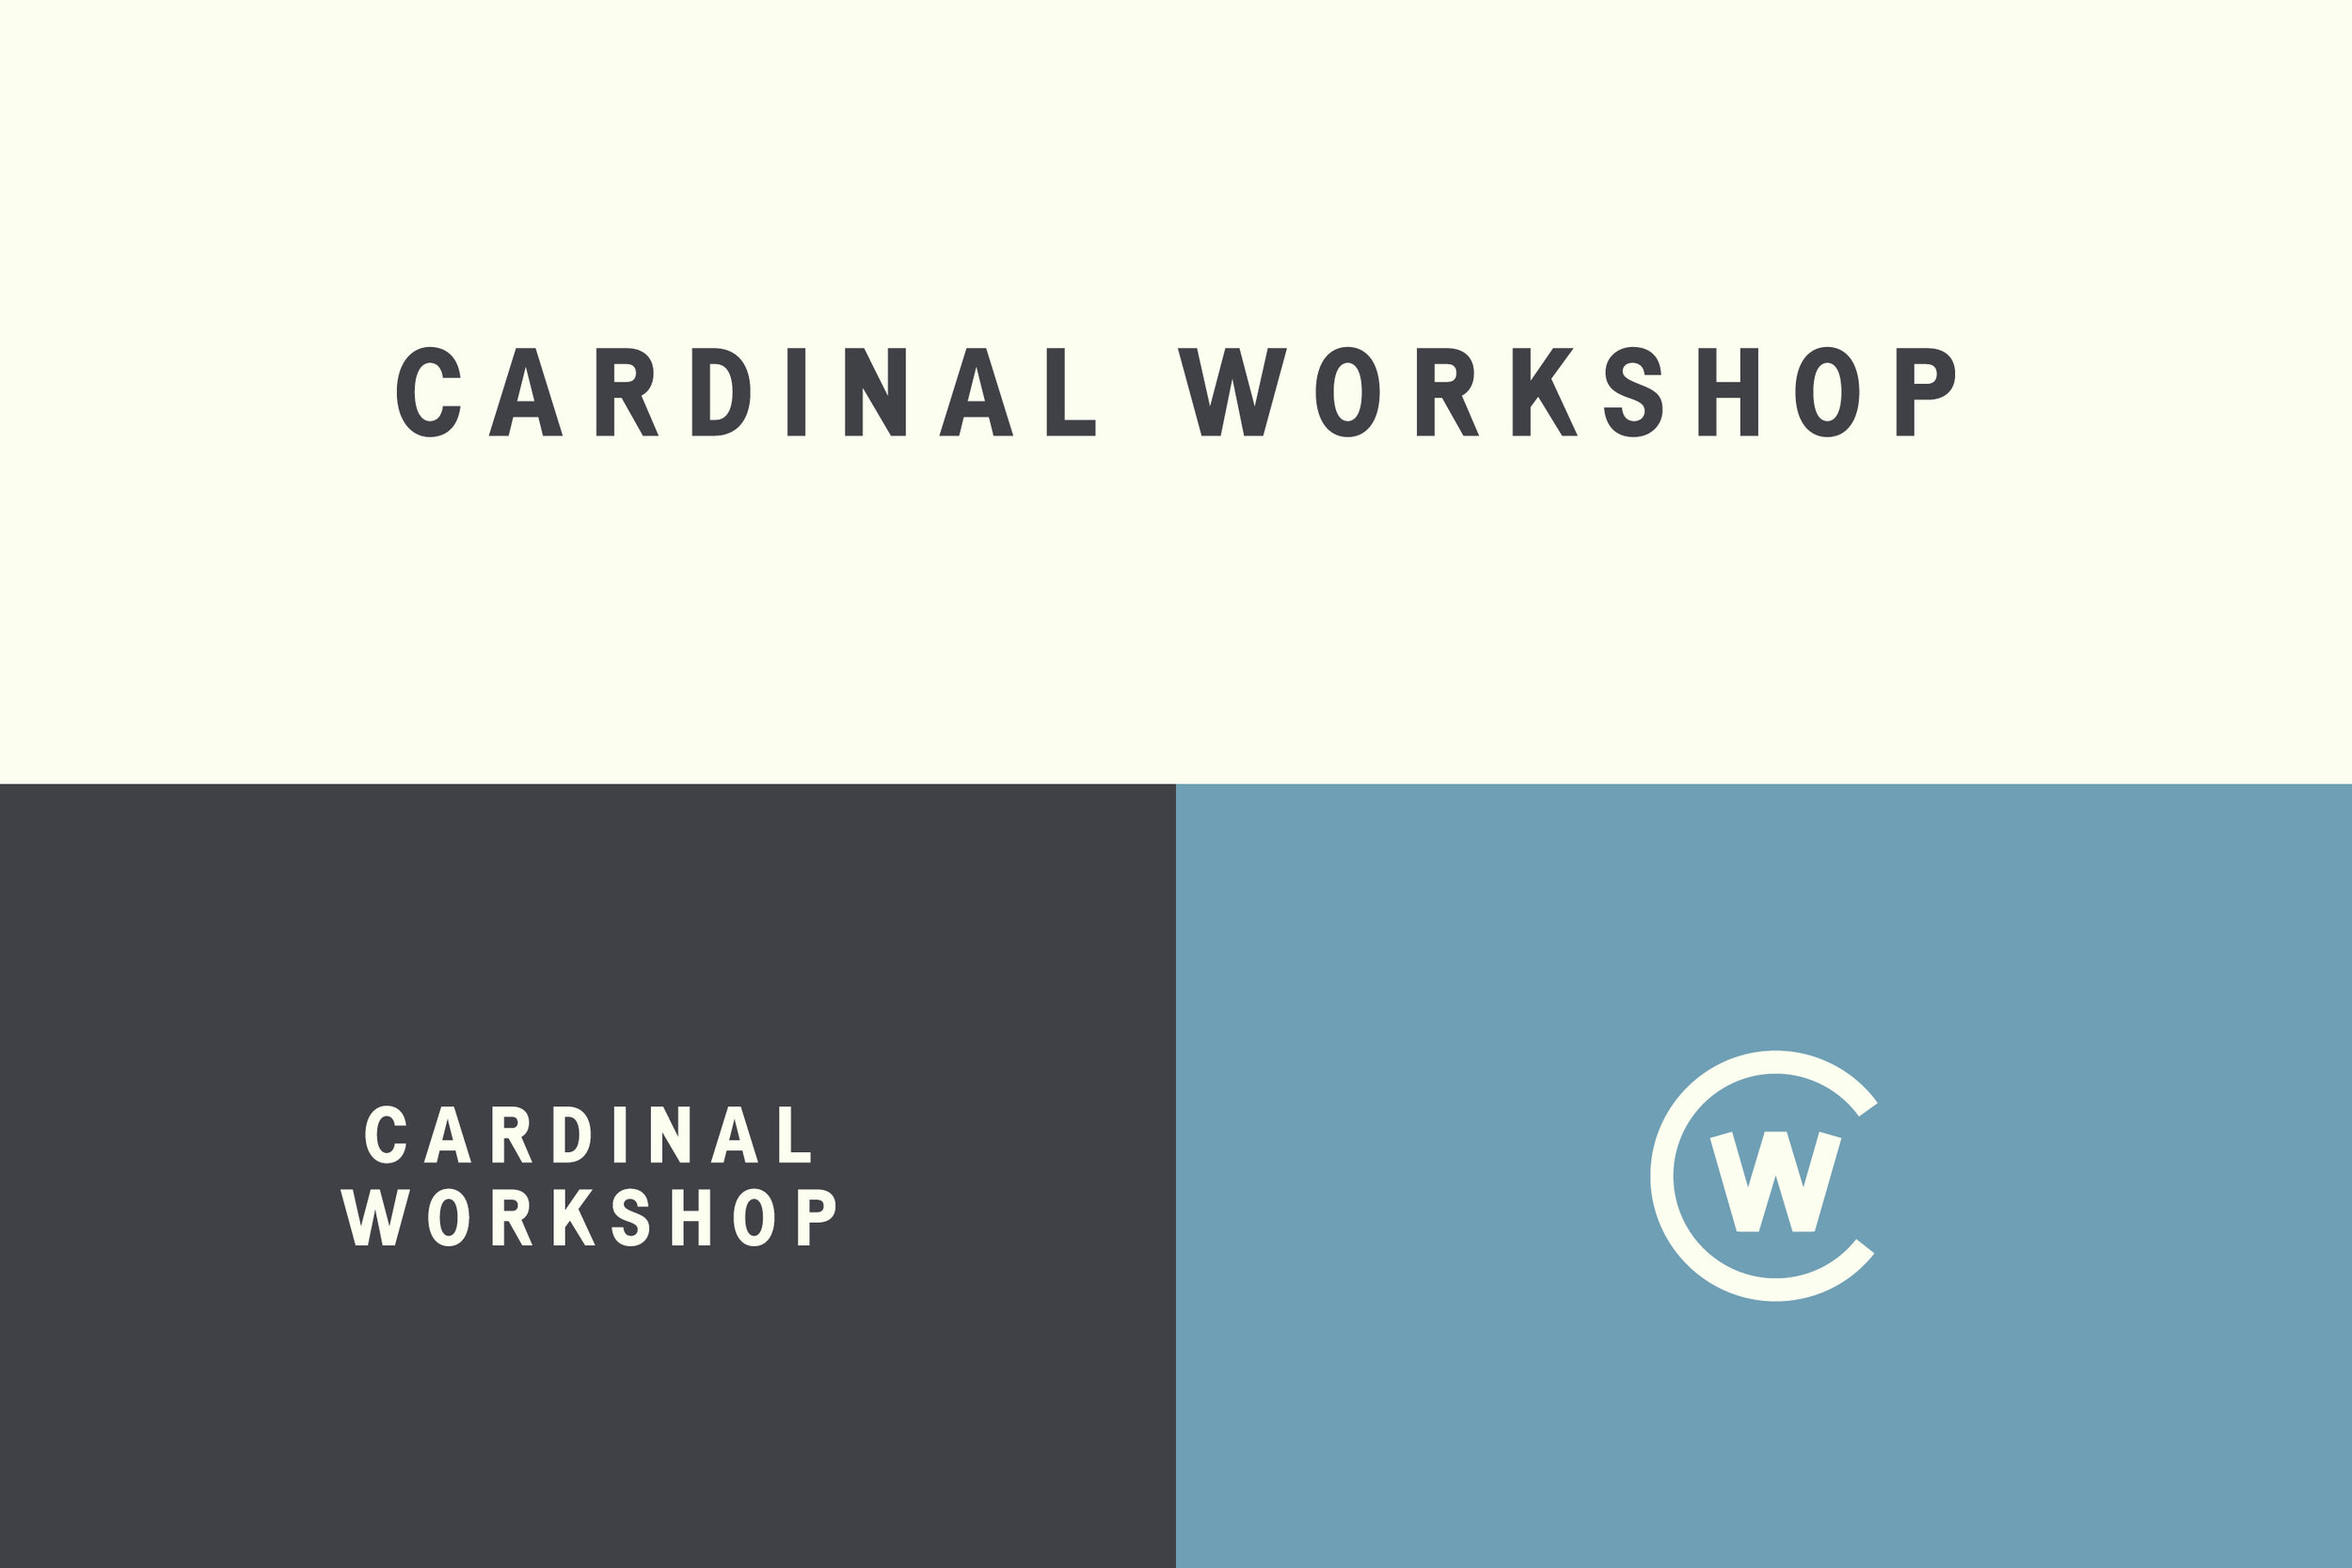 folio-cardinal-workshop6.jpg